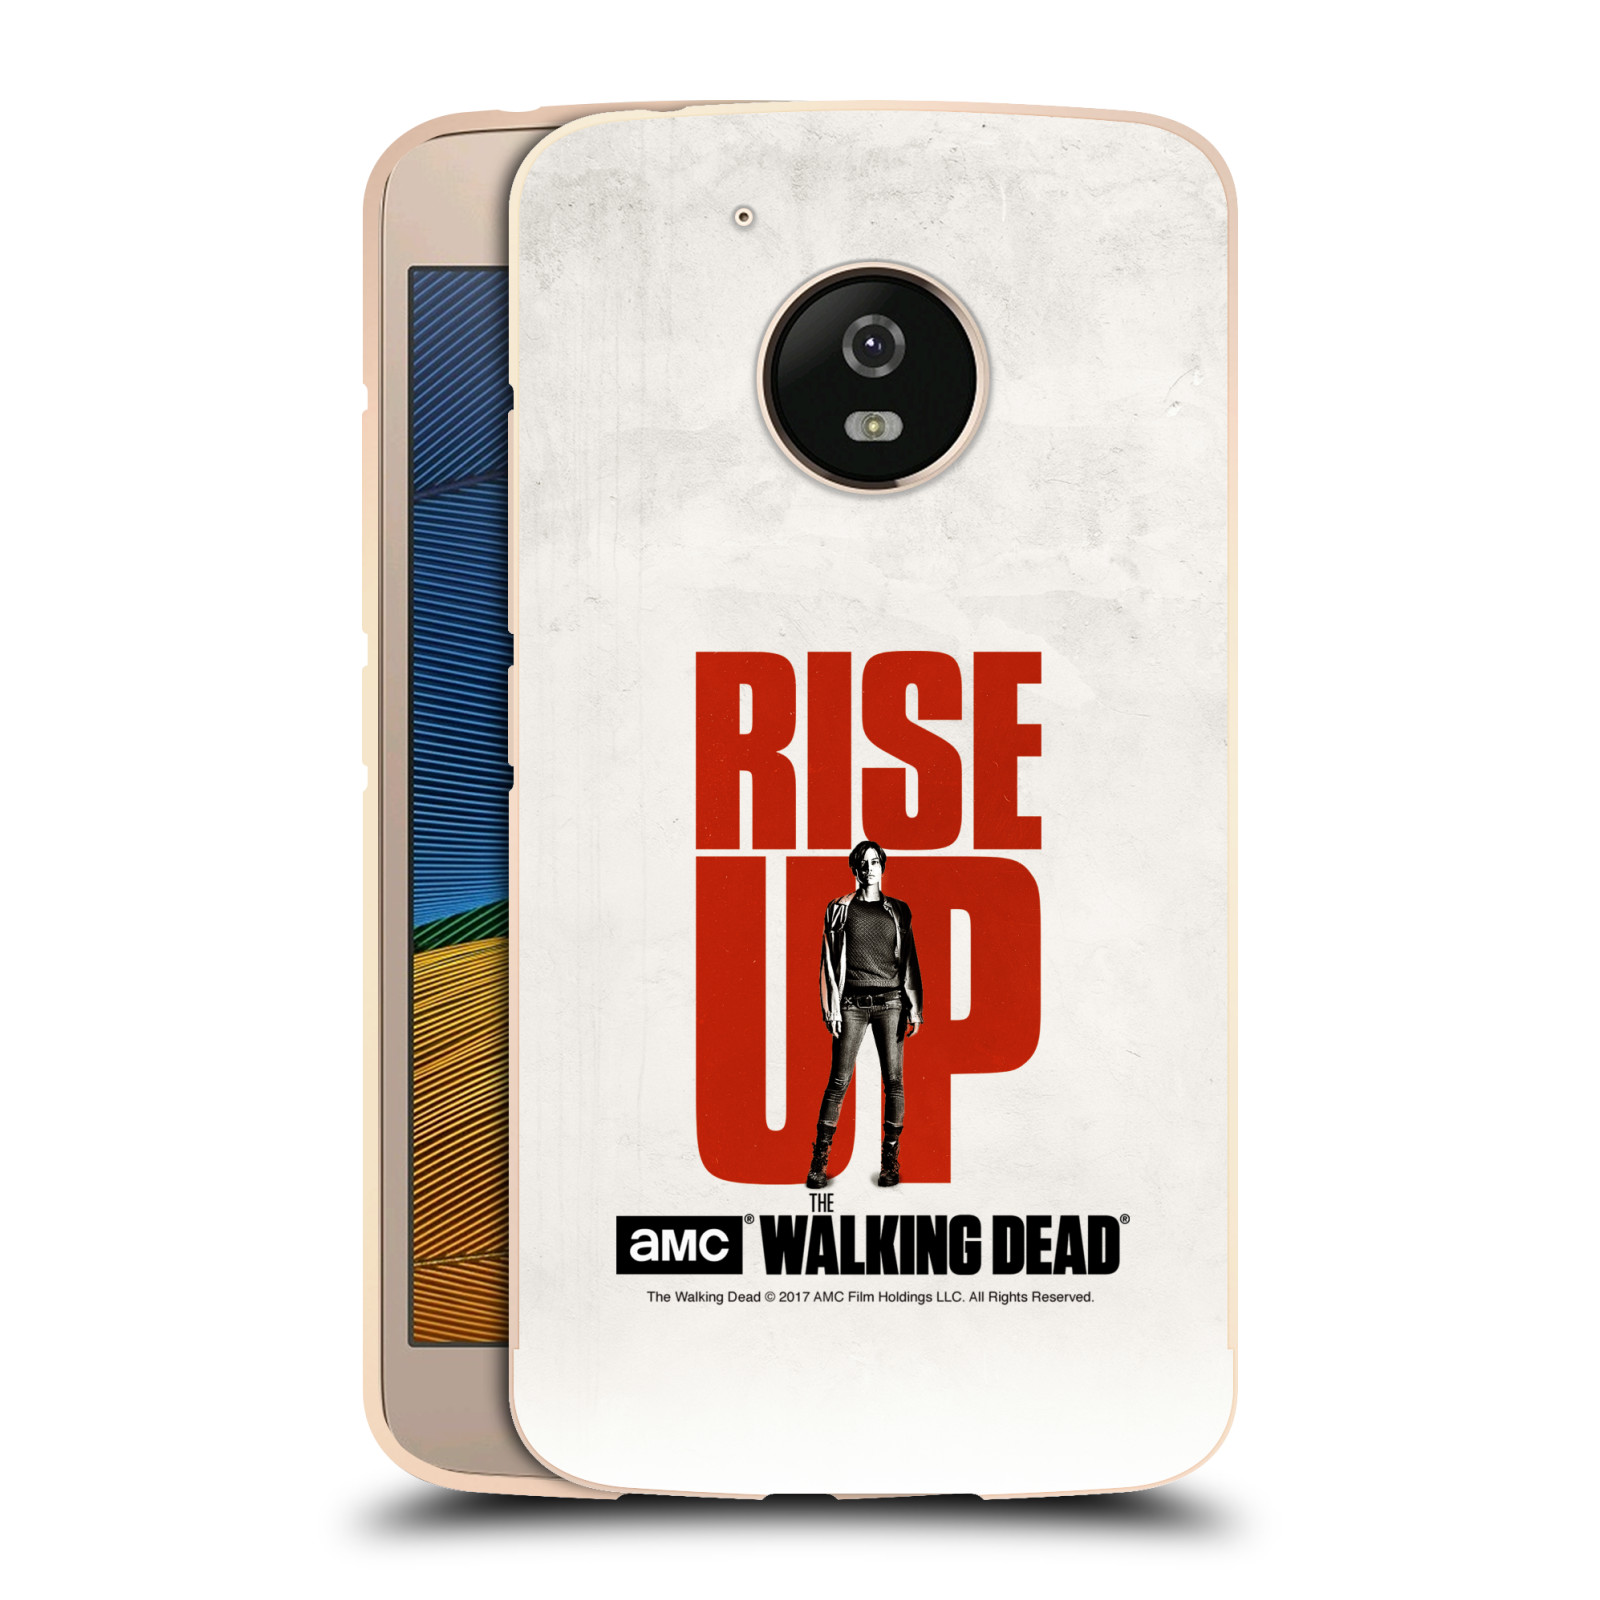 AMC-THE-WALKING-DEAD-RISE-UP-GOLD-METALLIC-ALUMINIUM-BUMPER-FOR-MOTOROLA-PHONES